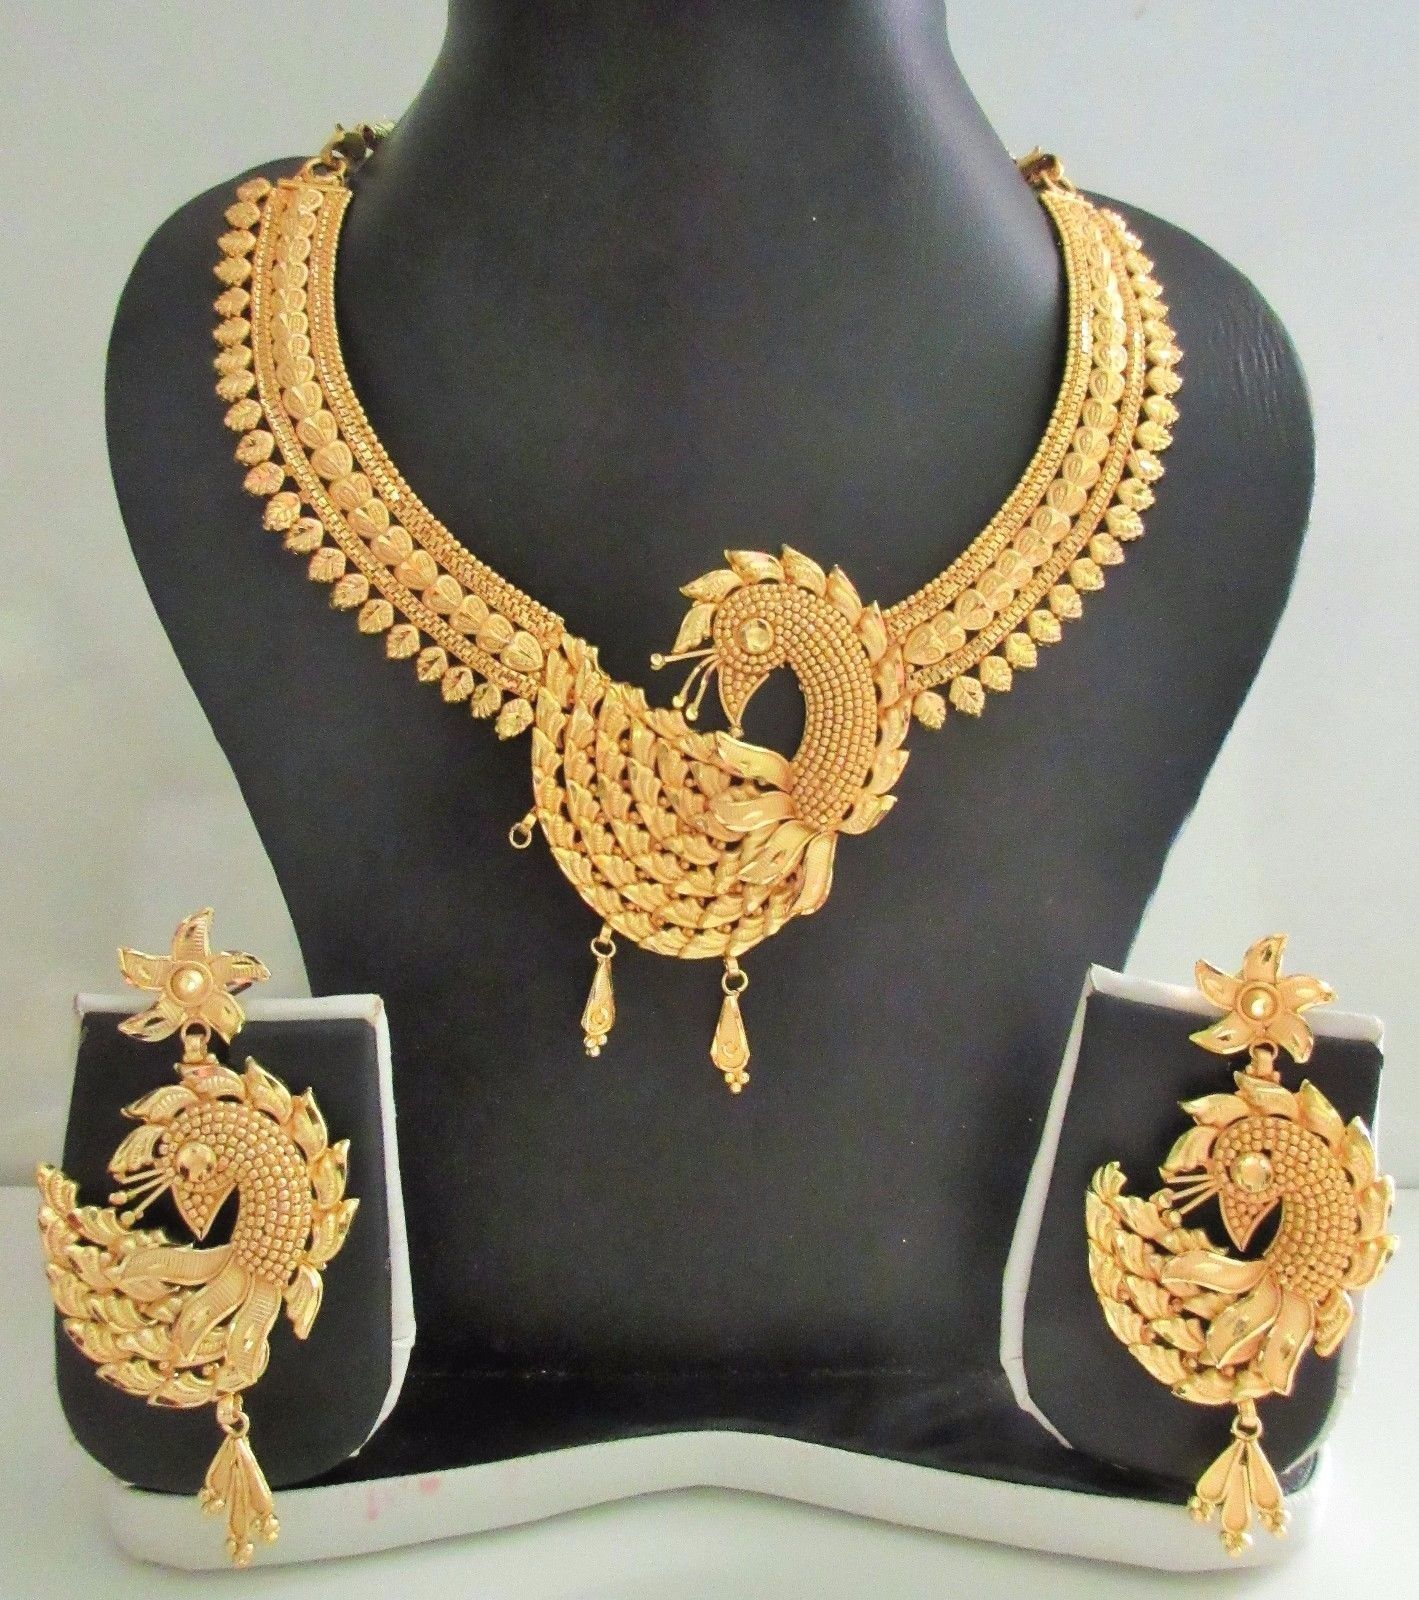 raas wedding jewelry global the jewellery online indian navratri oxidized usa products desi fashion